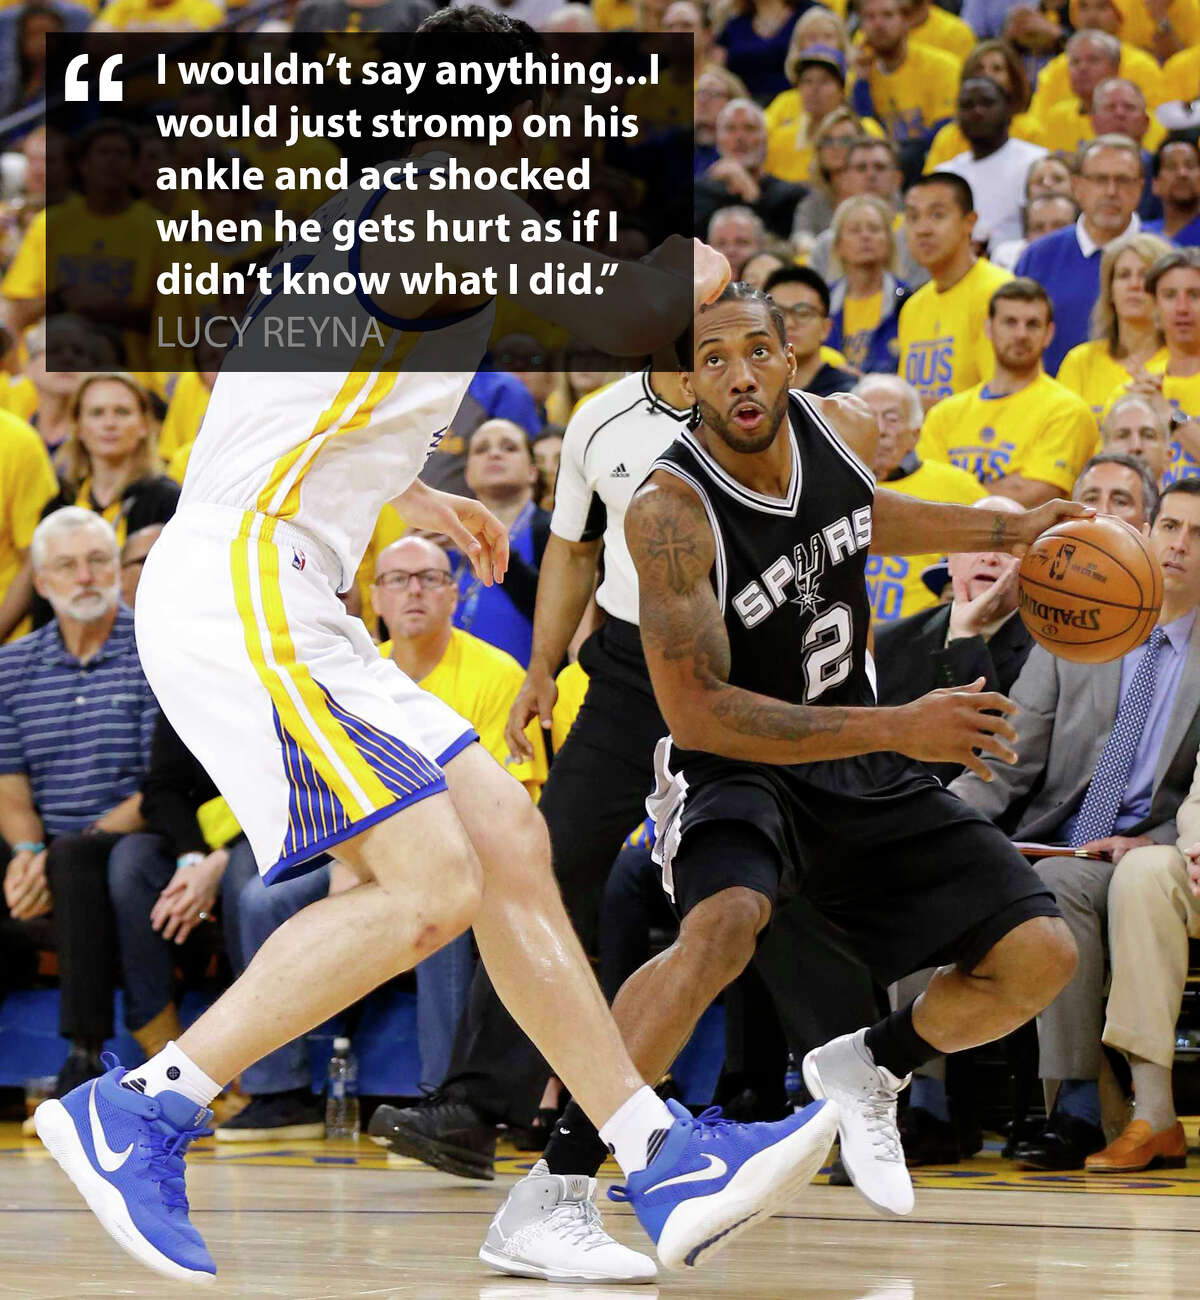 If Spurs fans had the chance to speak to Golden State Warrior Zaza Pachulia, whose notorious foul on Kawhi Leonard led to a season-ending injury, this is what they would say/do.